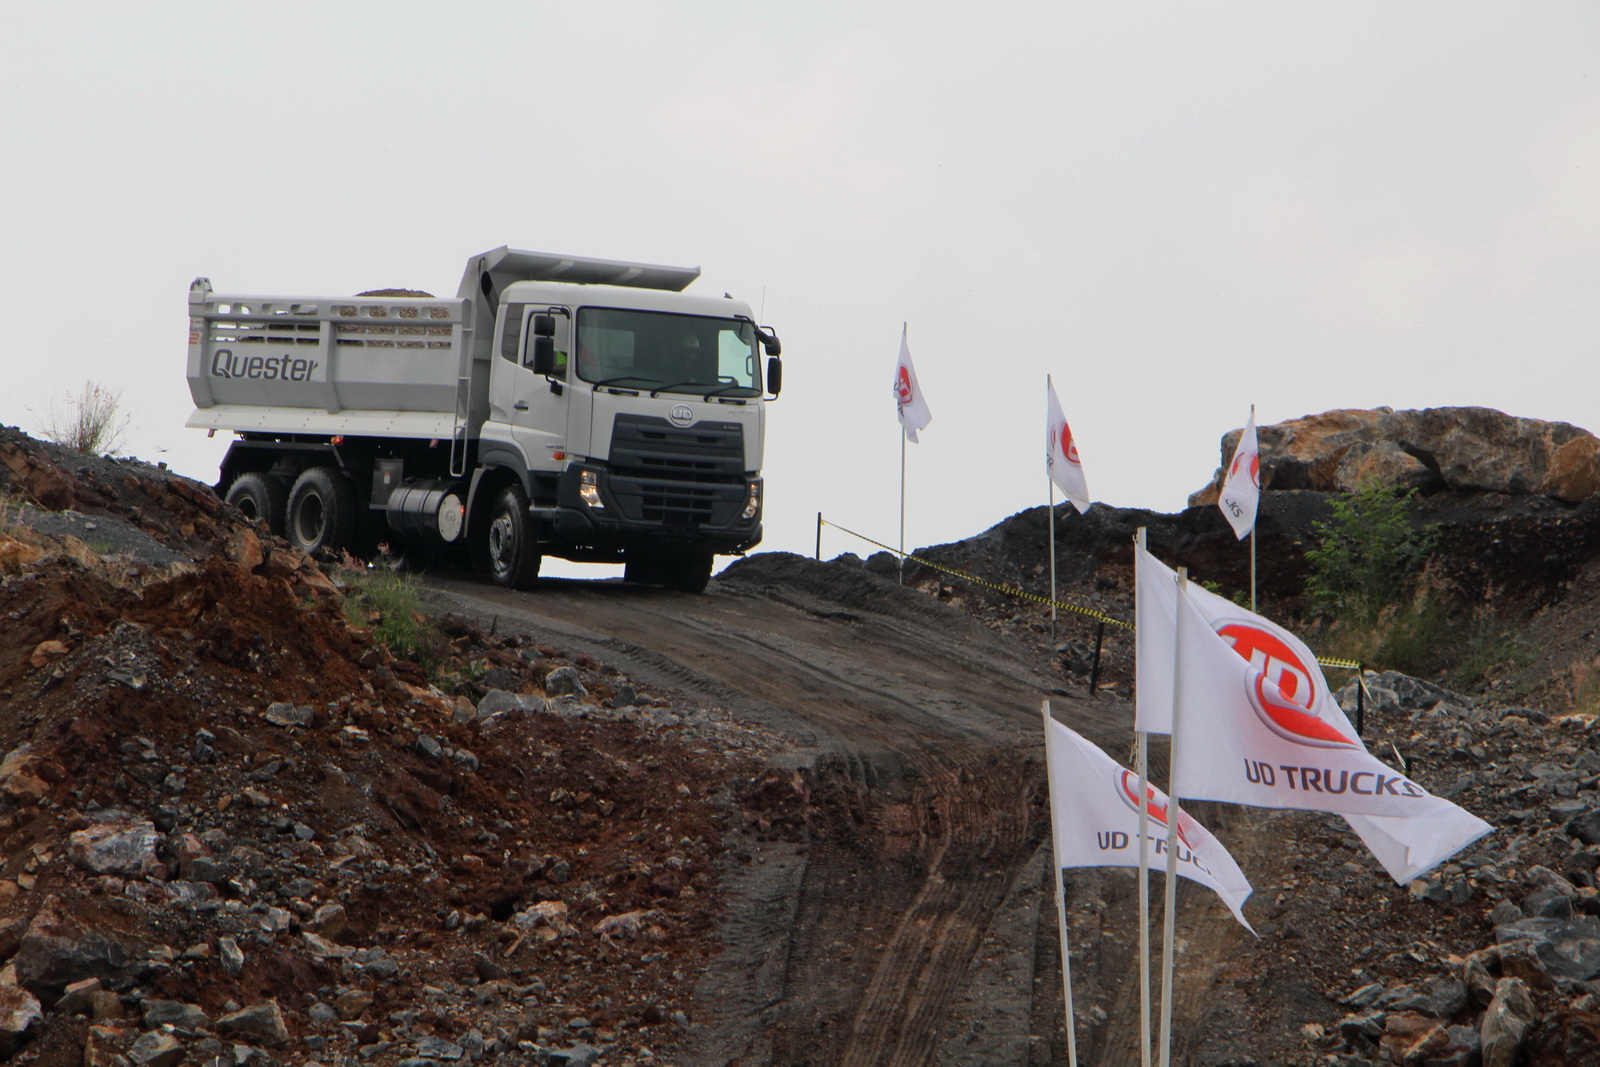 ud_truck_quester_14